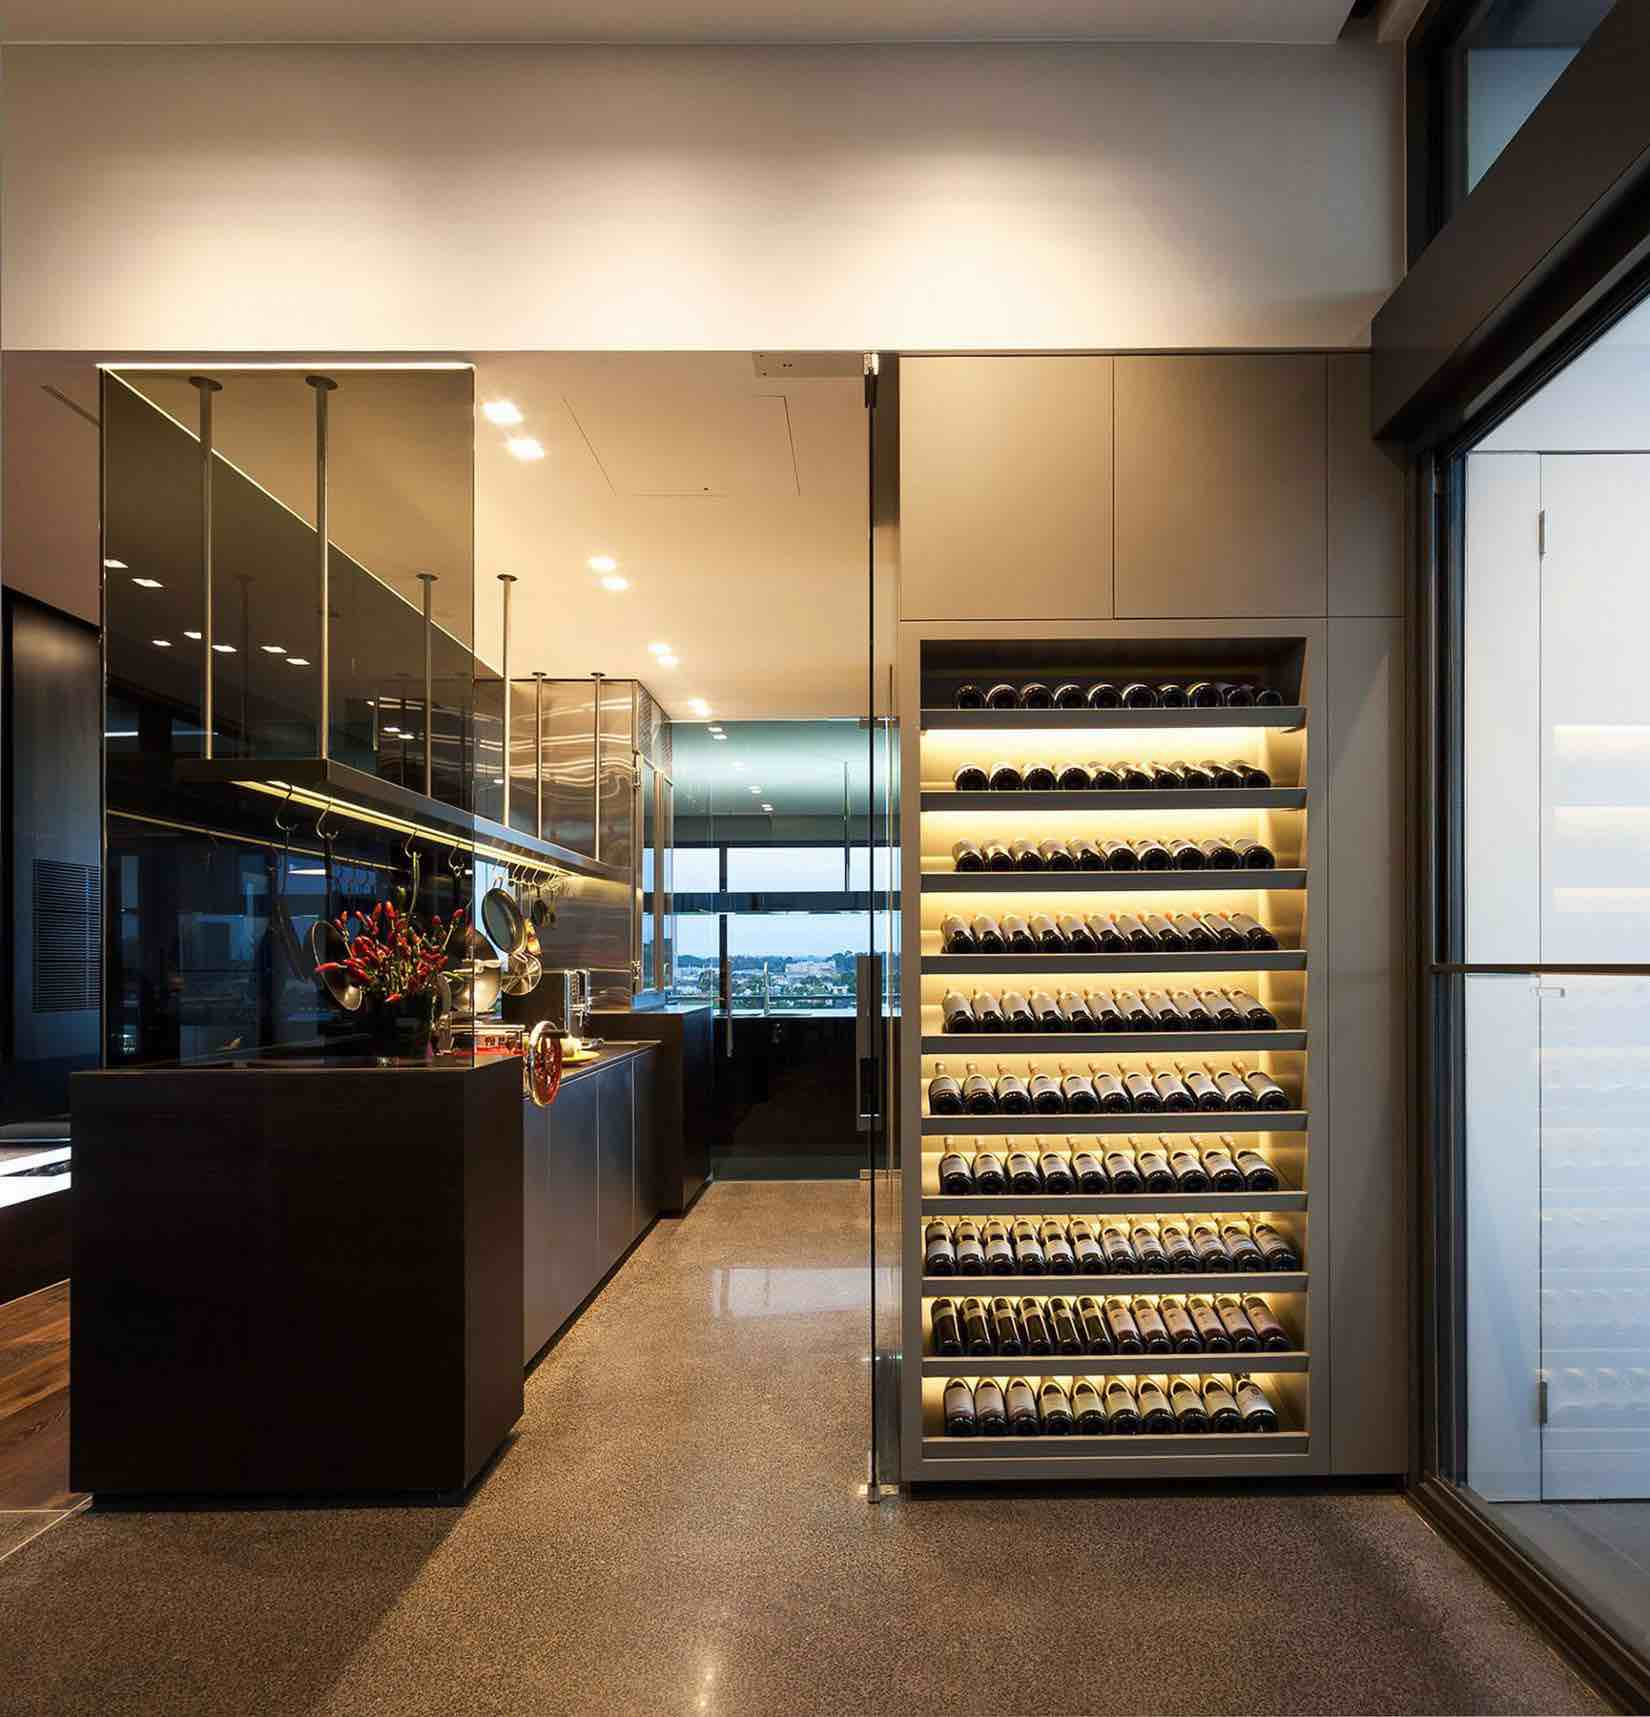 Wine Cellar In Kitchen Floor Coppin Penthouse By Jam Architects Caandesign Architecture And